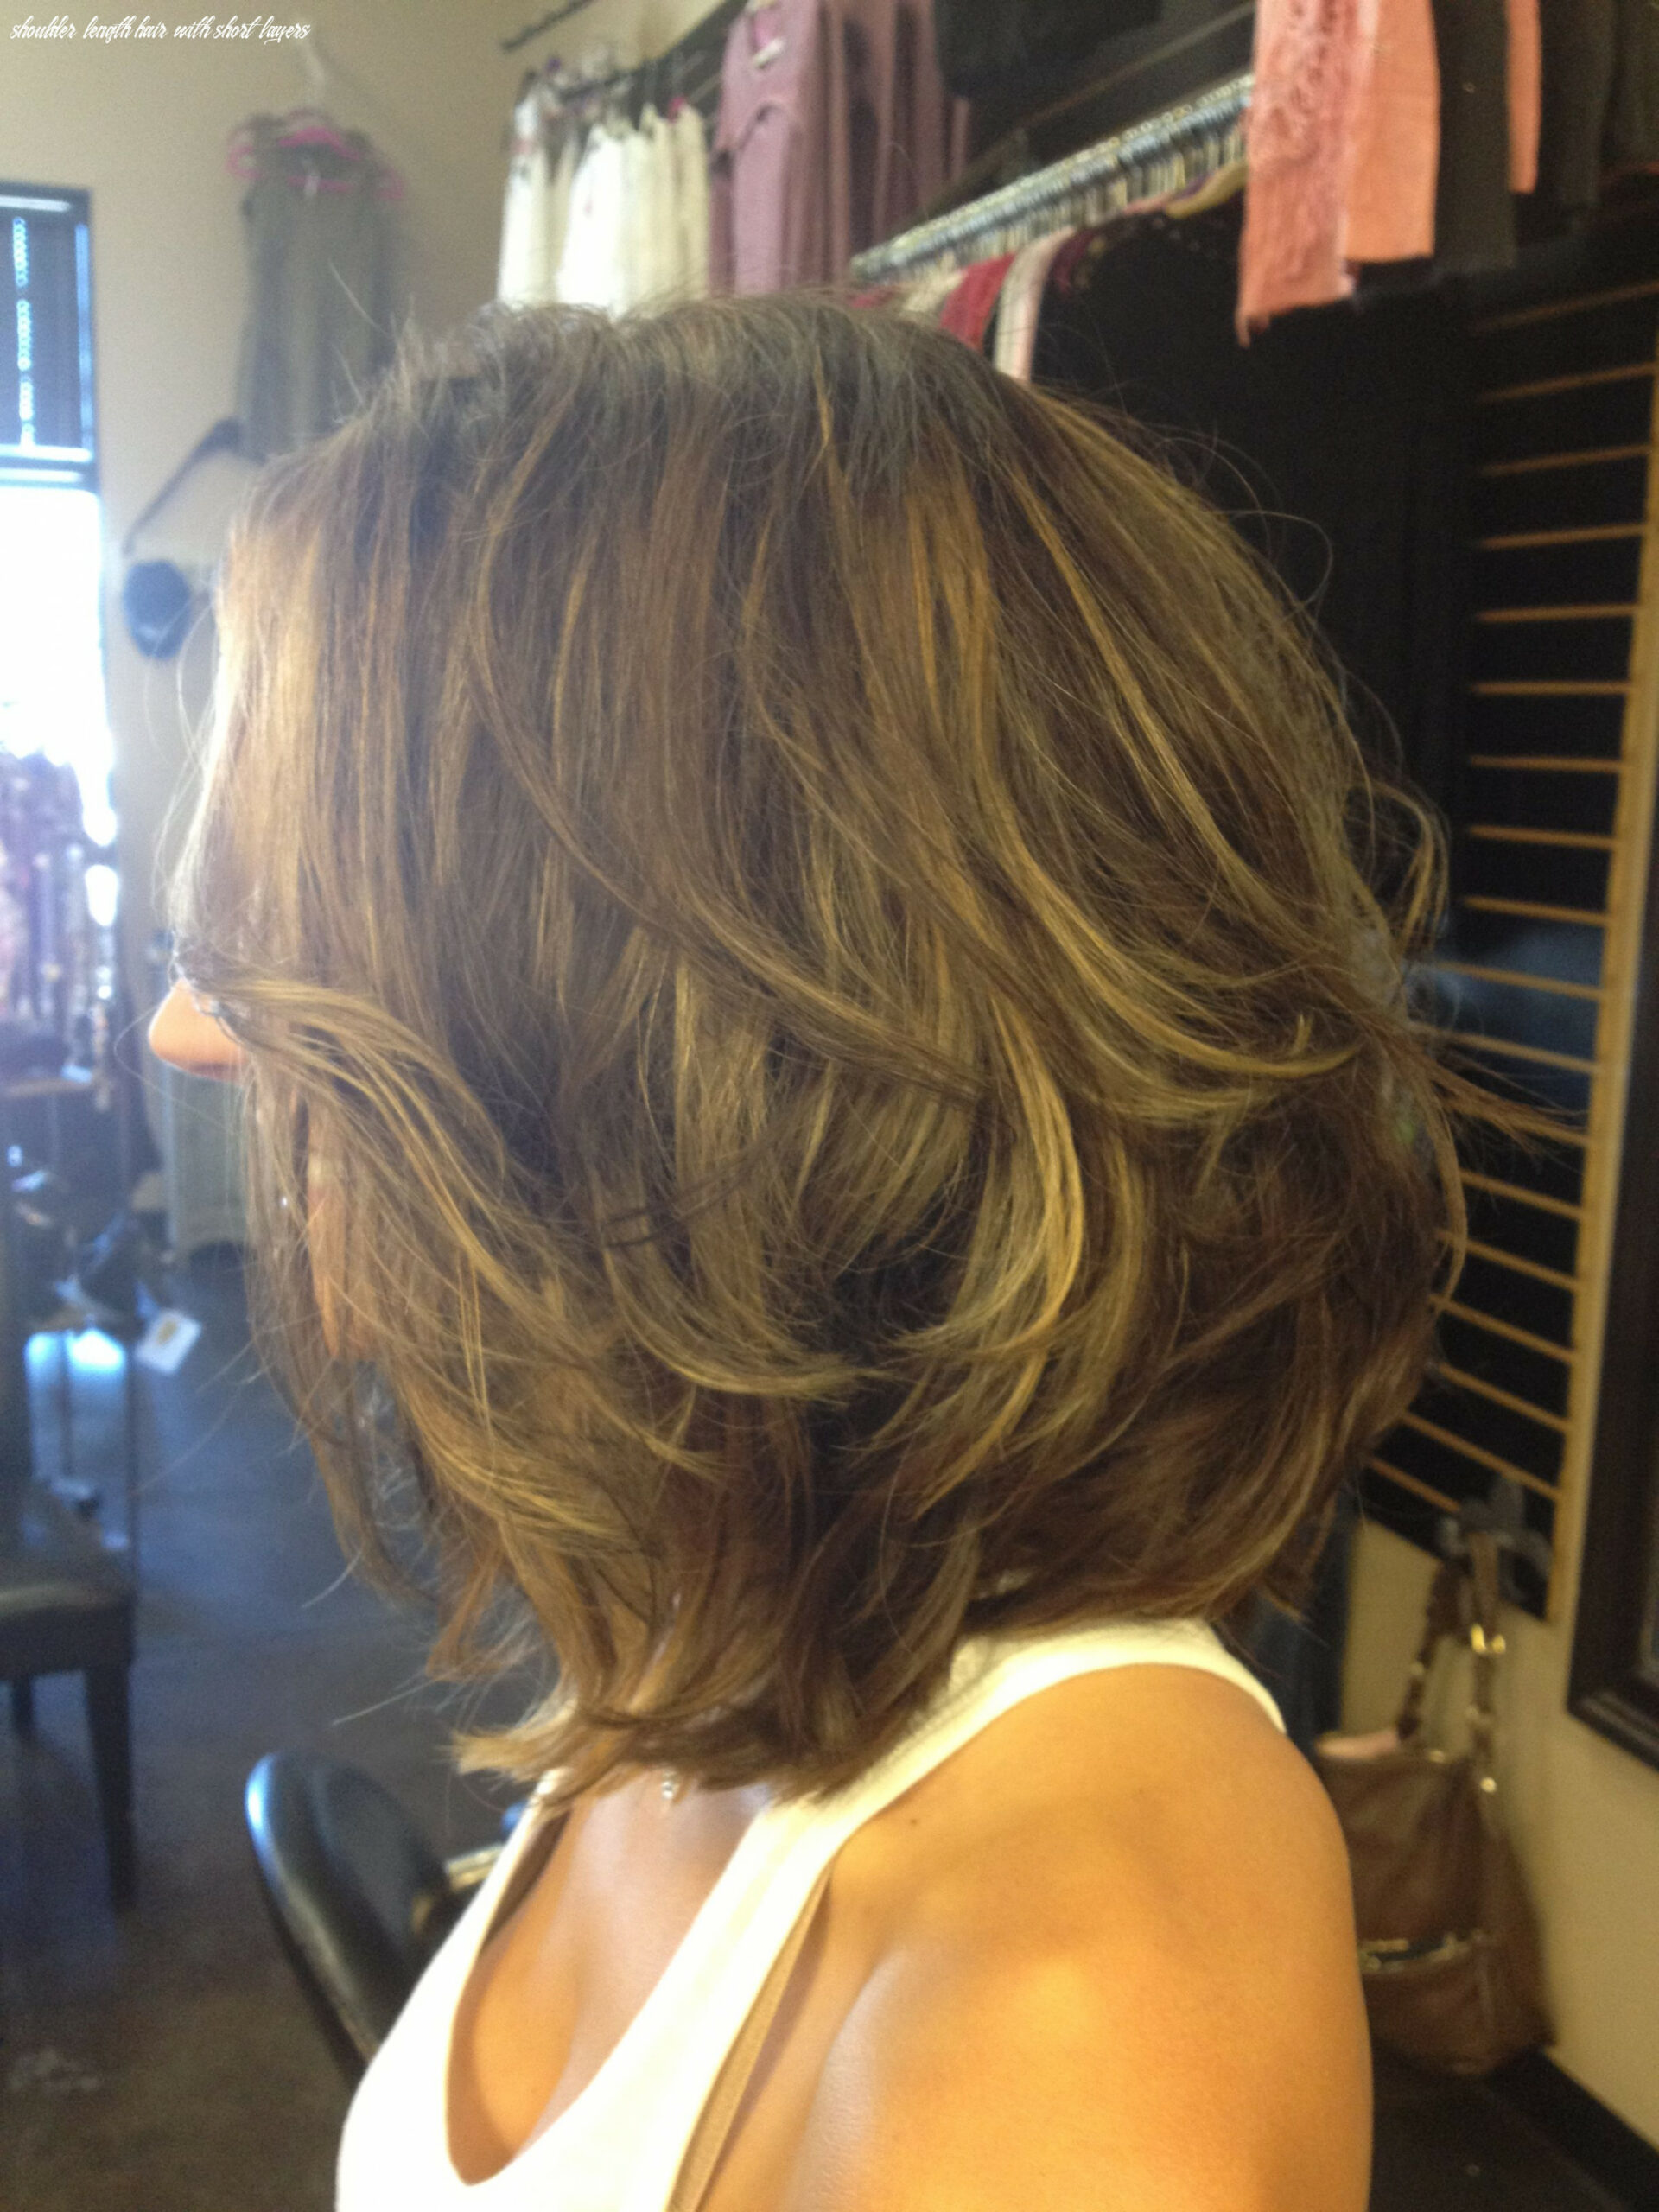 Pin on hair styles shoulder length hair with short layers